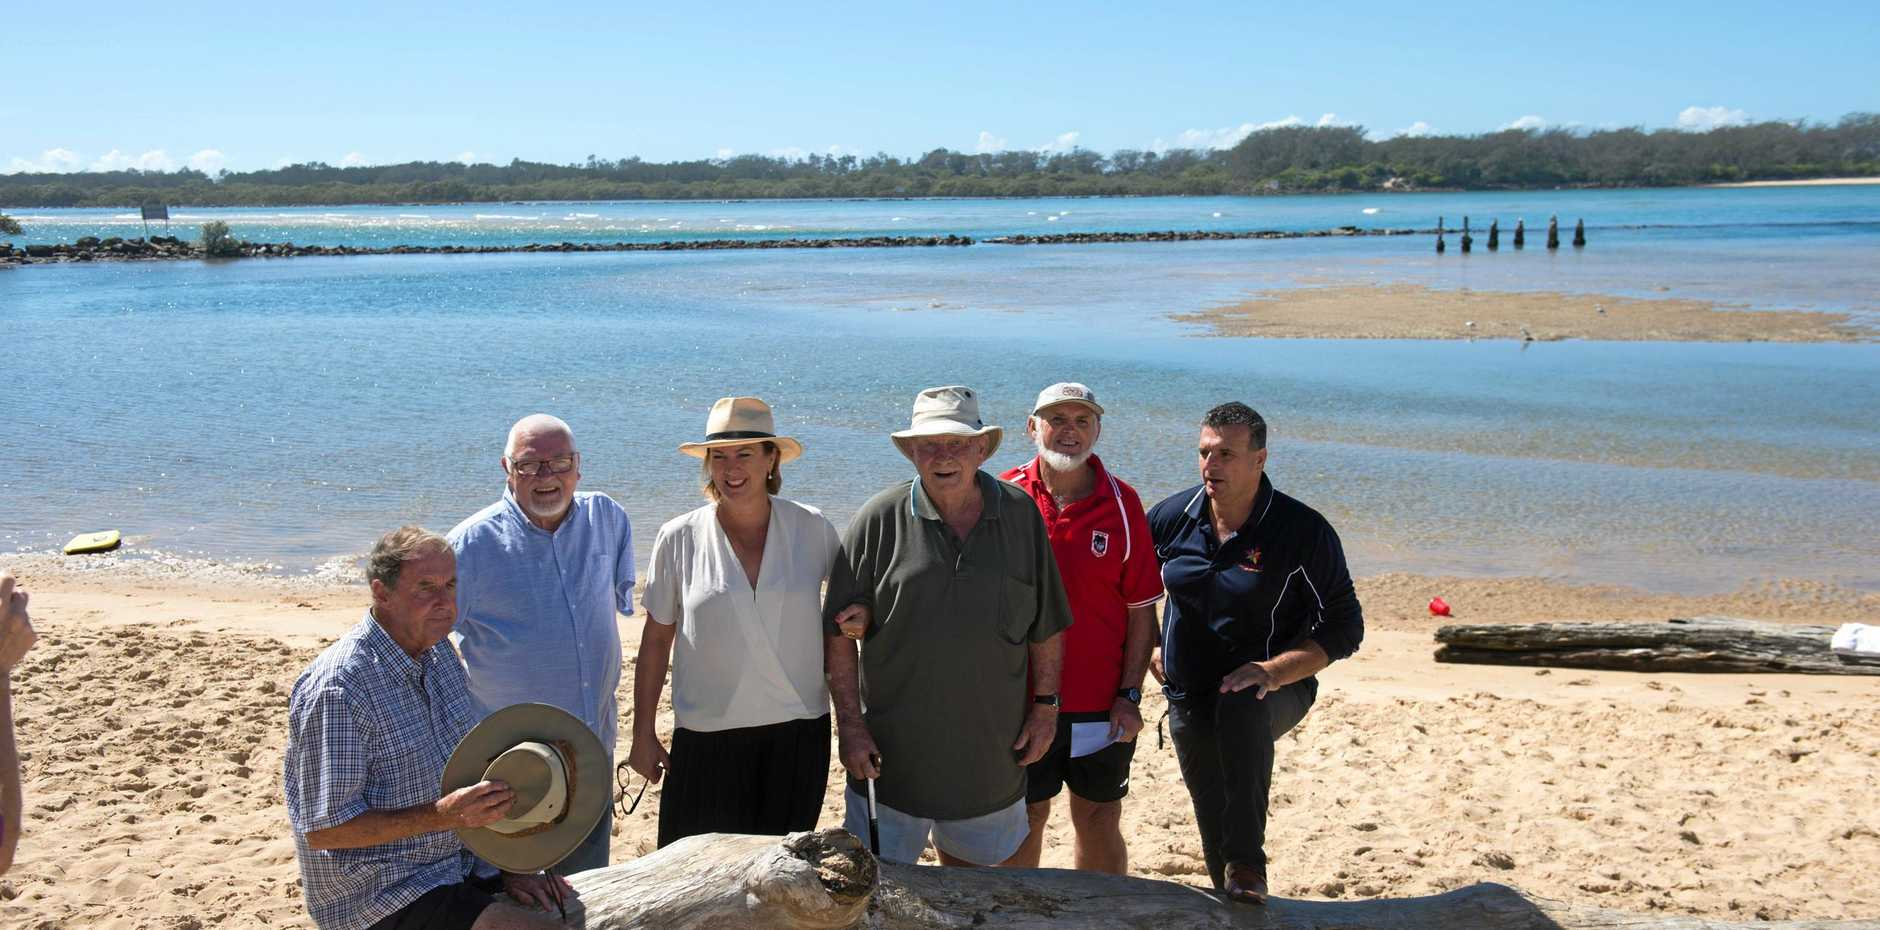 Melinda Pavey, pictured with members of the Urunga Tidal Pool Action Group, announced funding for the revitalisation of the facility in April this year.